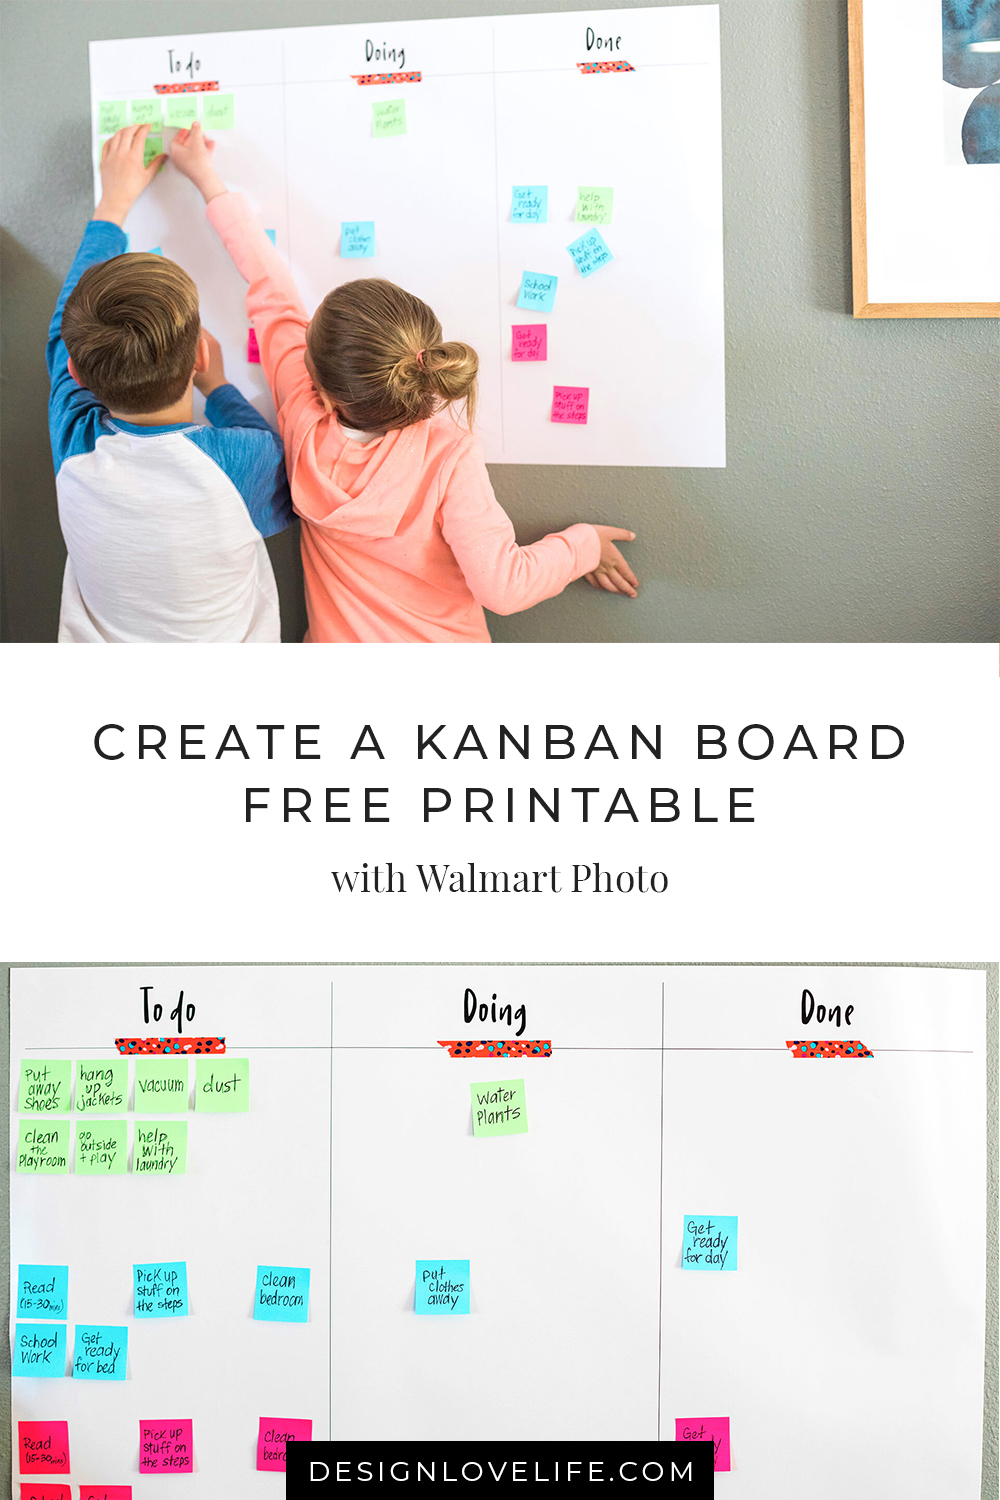 kanban board cards written out, from Design Love Life in partnership with Walmart Photo Center